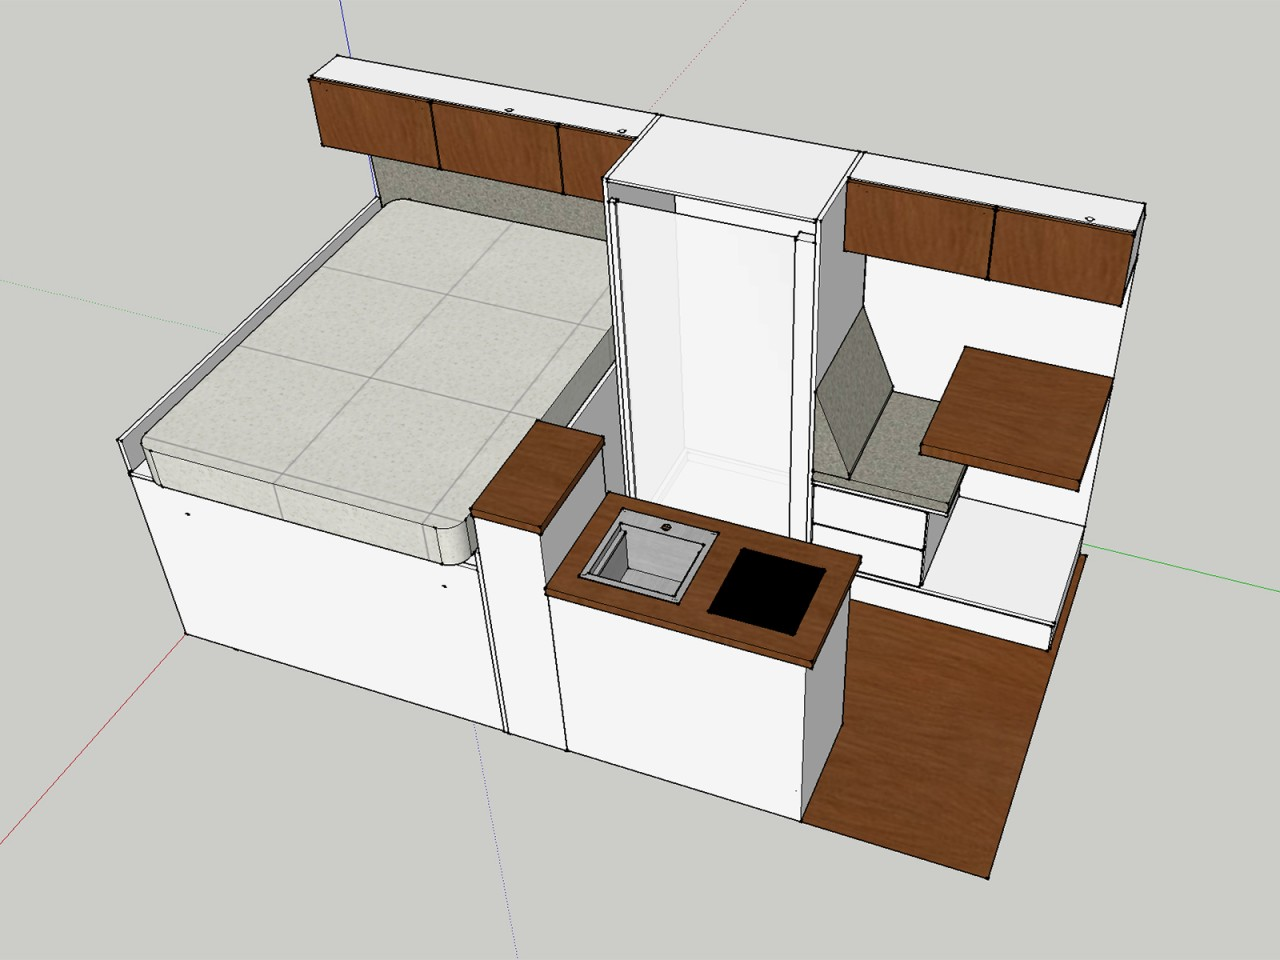 To make room for the central wet bath of the Basecamper Plus, RSV slides the dinette to the front, relying on swivel cab seats